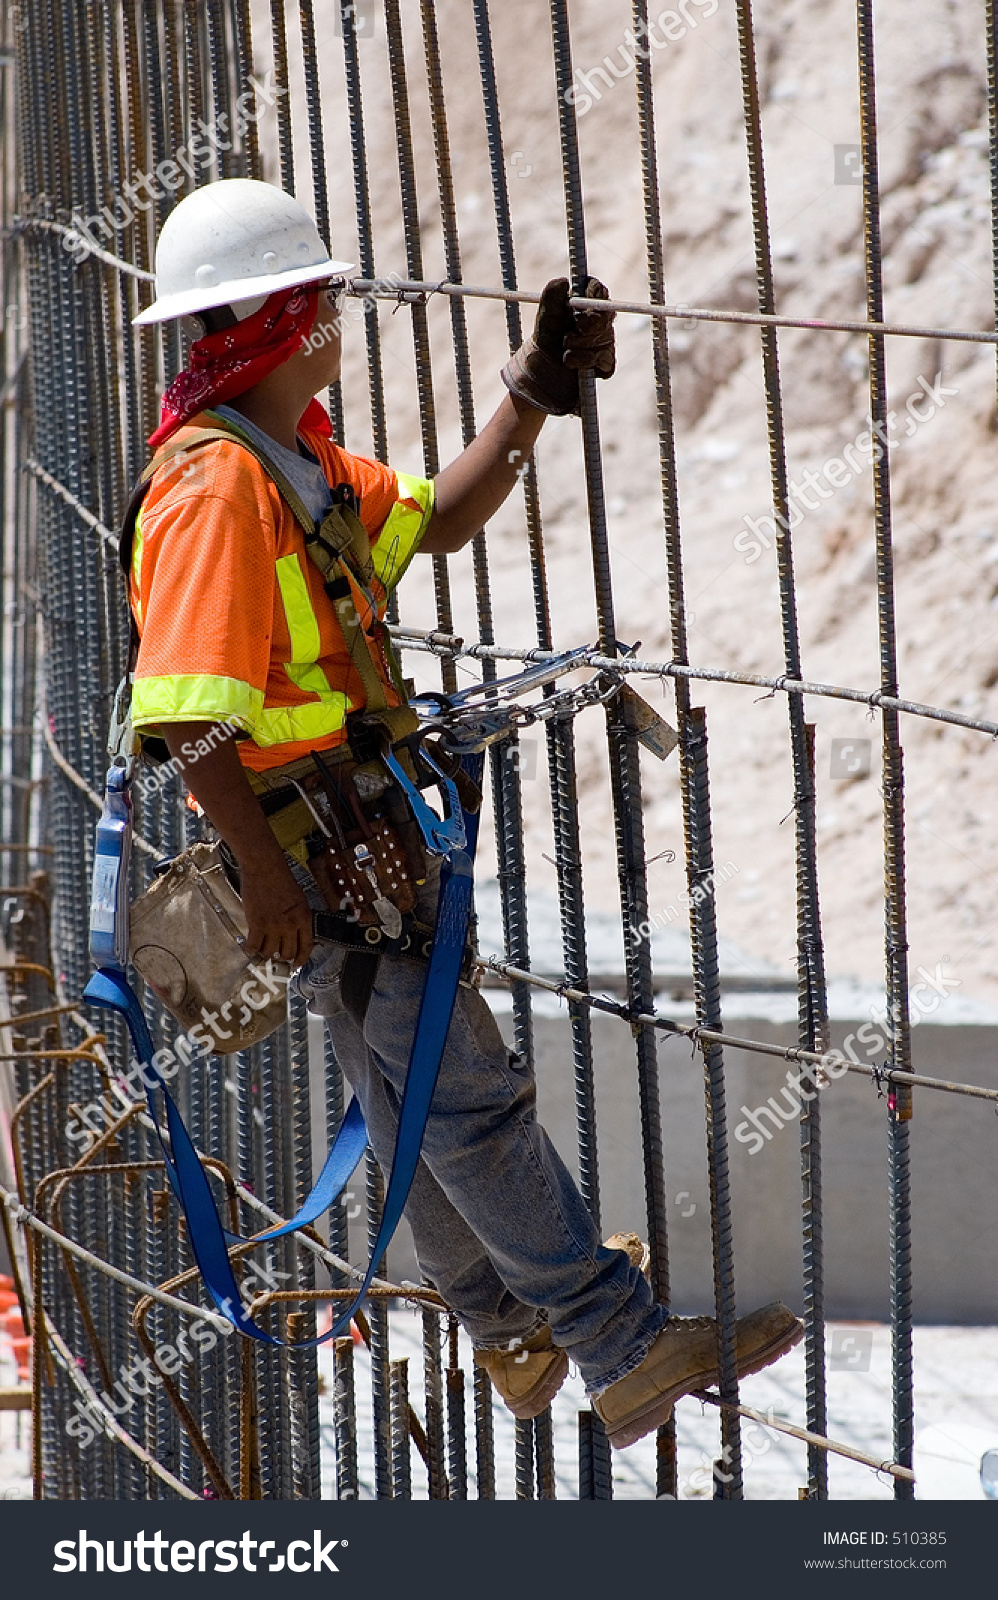 construction worker tying rebar for concrete reinforcement on a road construction project